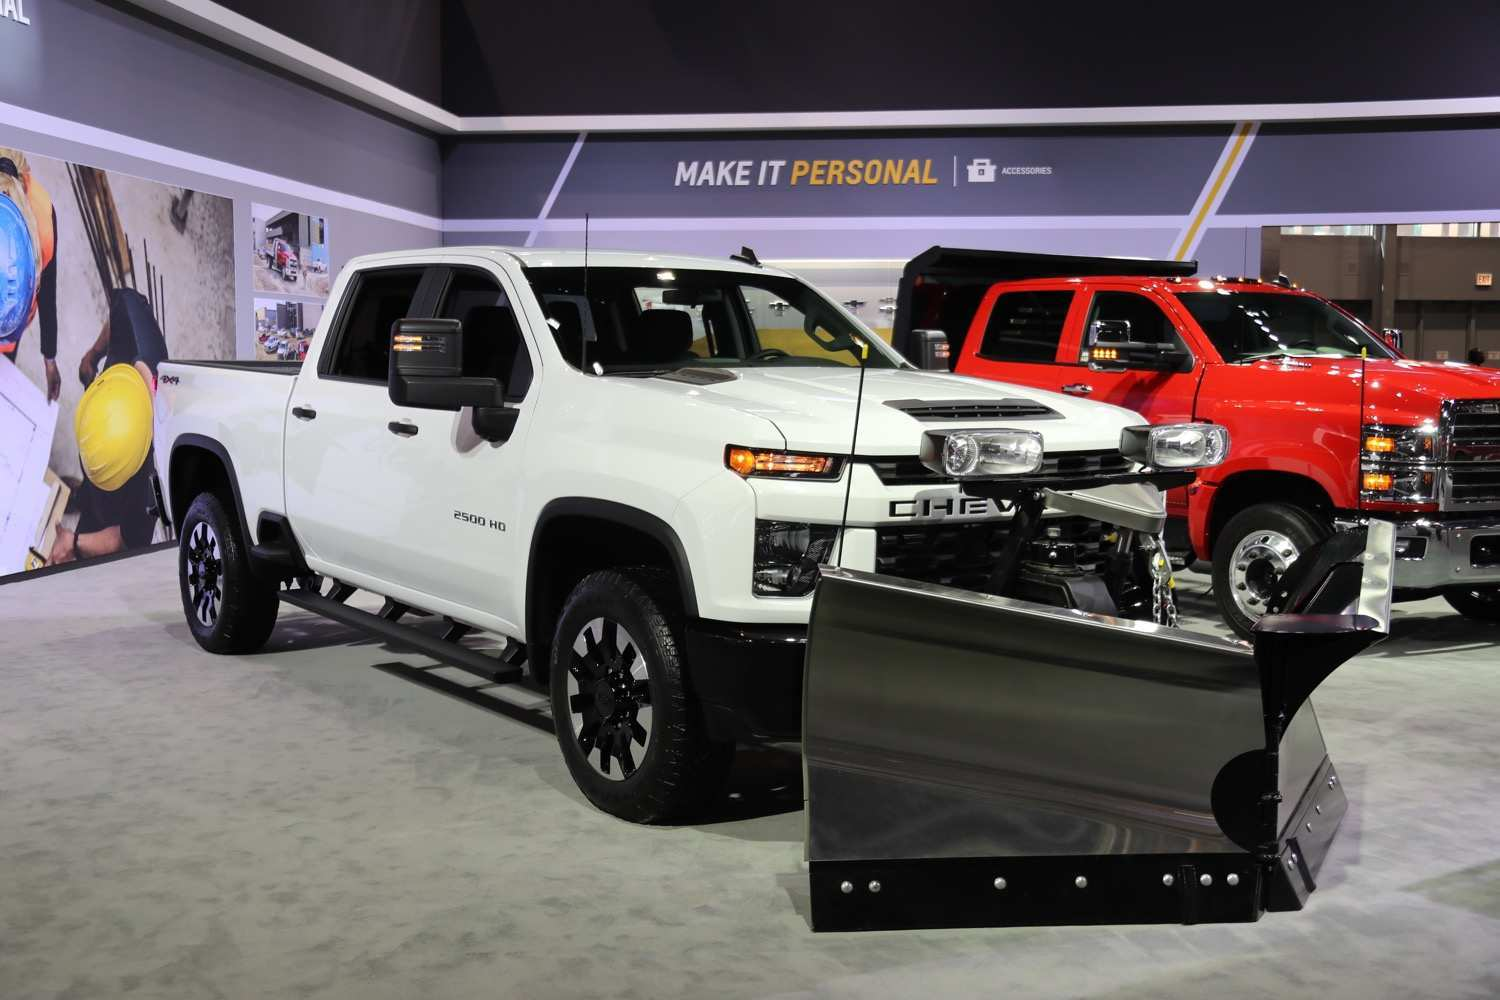 62 All New 2020 Silverado Hd Images